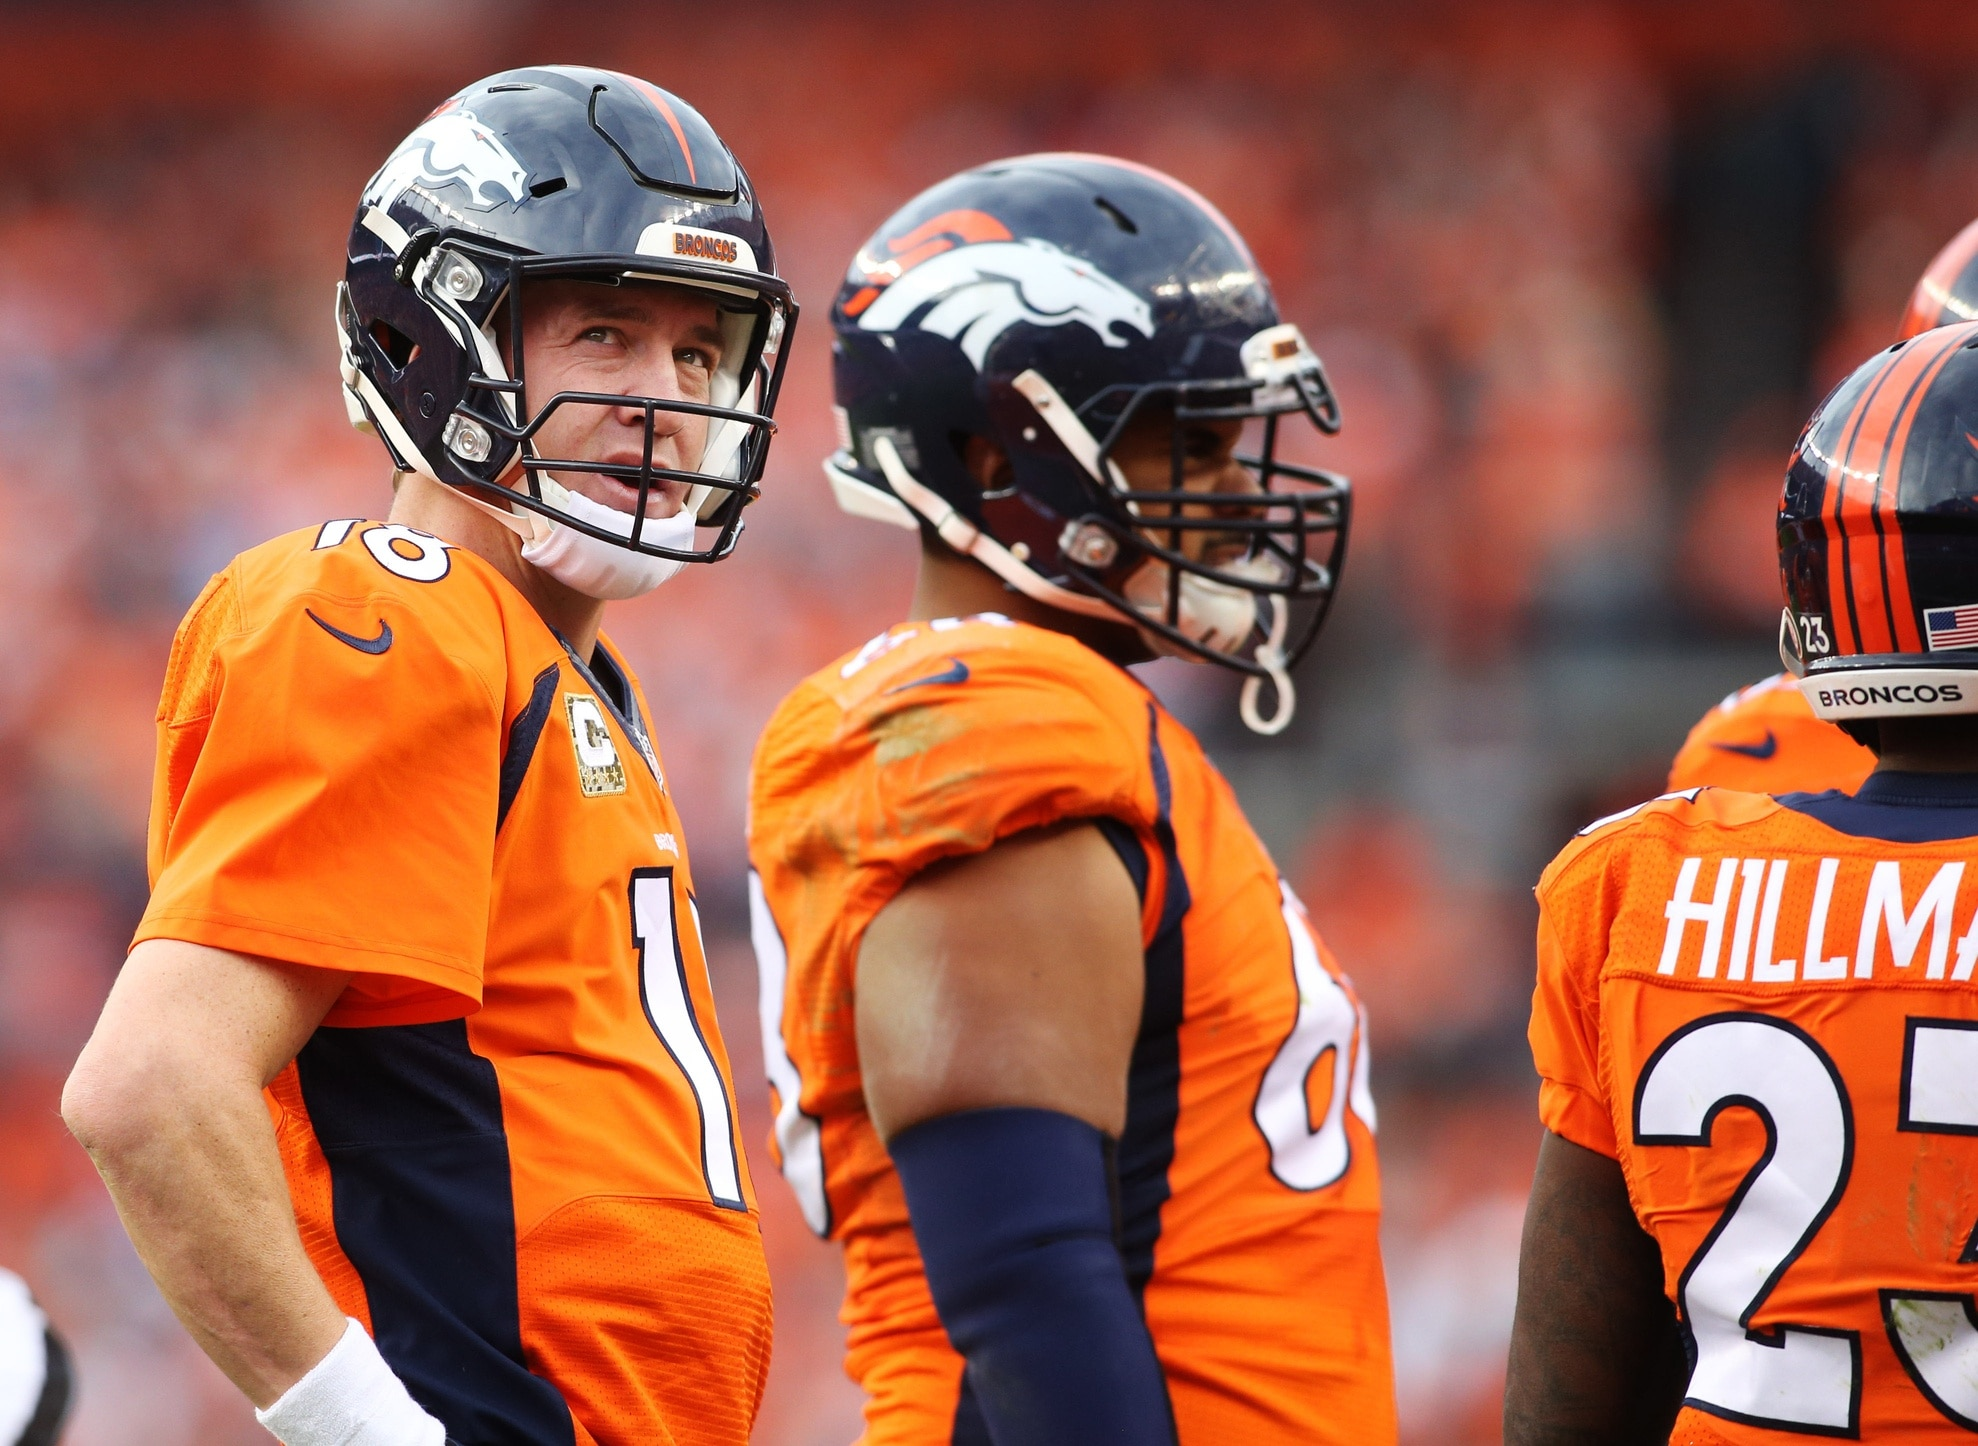 Nov 15, 2015; Denver, CO, USA; Denver Broncos quarterback Peyton Manning (18) looks on during the first half against the Kansas City Chiefs at Sports Authority Field at Mile High. Mandatory Credit: Chris Humphreys-USA TODAY Sports